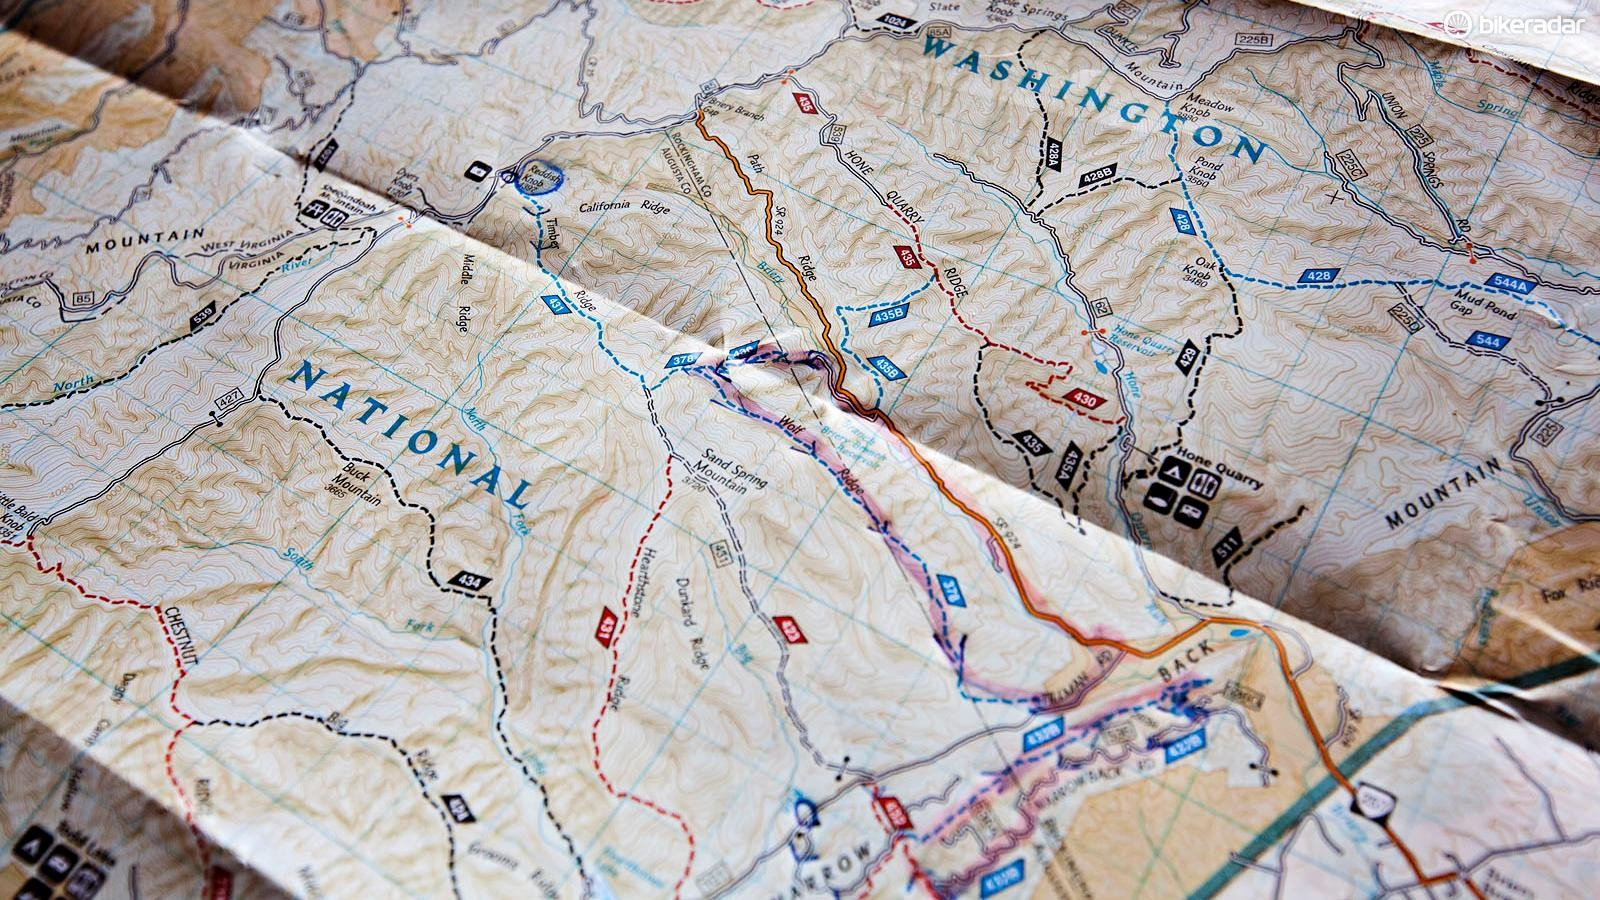 The trails in George Washington National Forest were the perfect proving grounds for the Deadwood